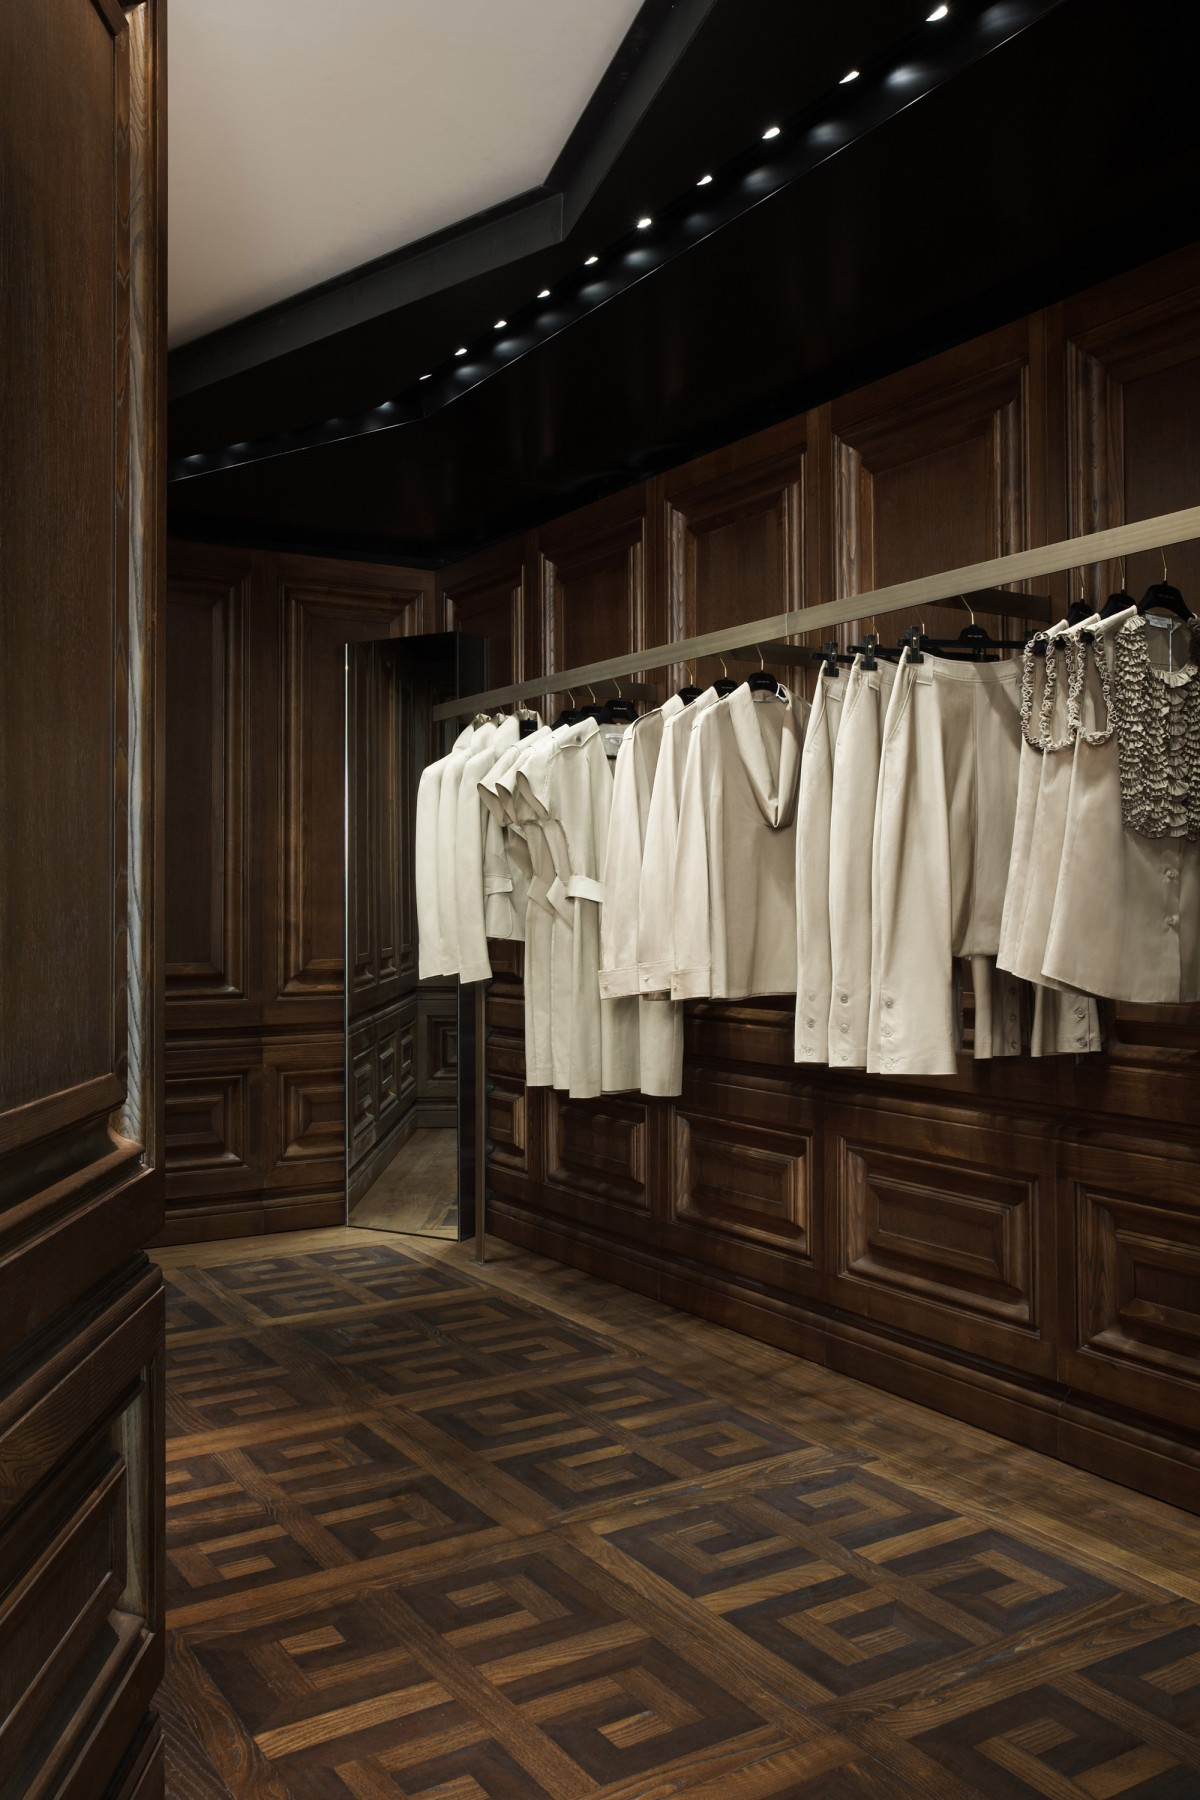 Givenchy-Paris-boutique-designer-fashion-retail-Jamie-Fobert-Architects-shop-8